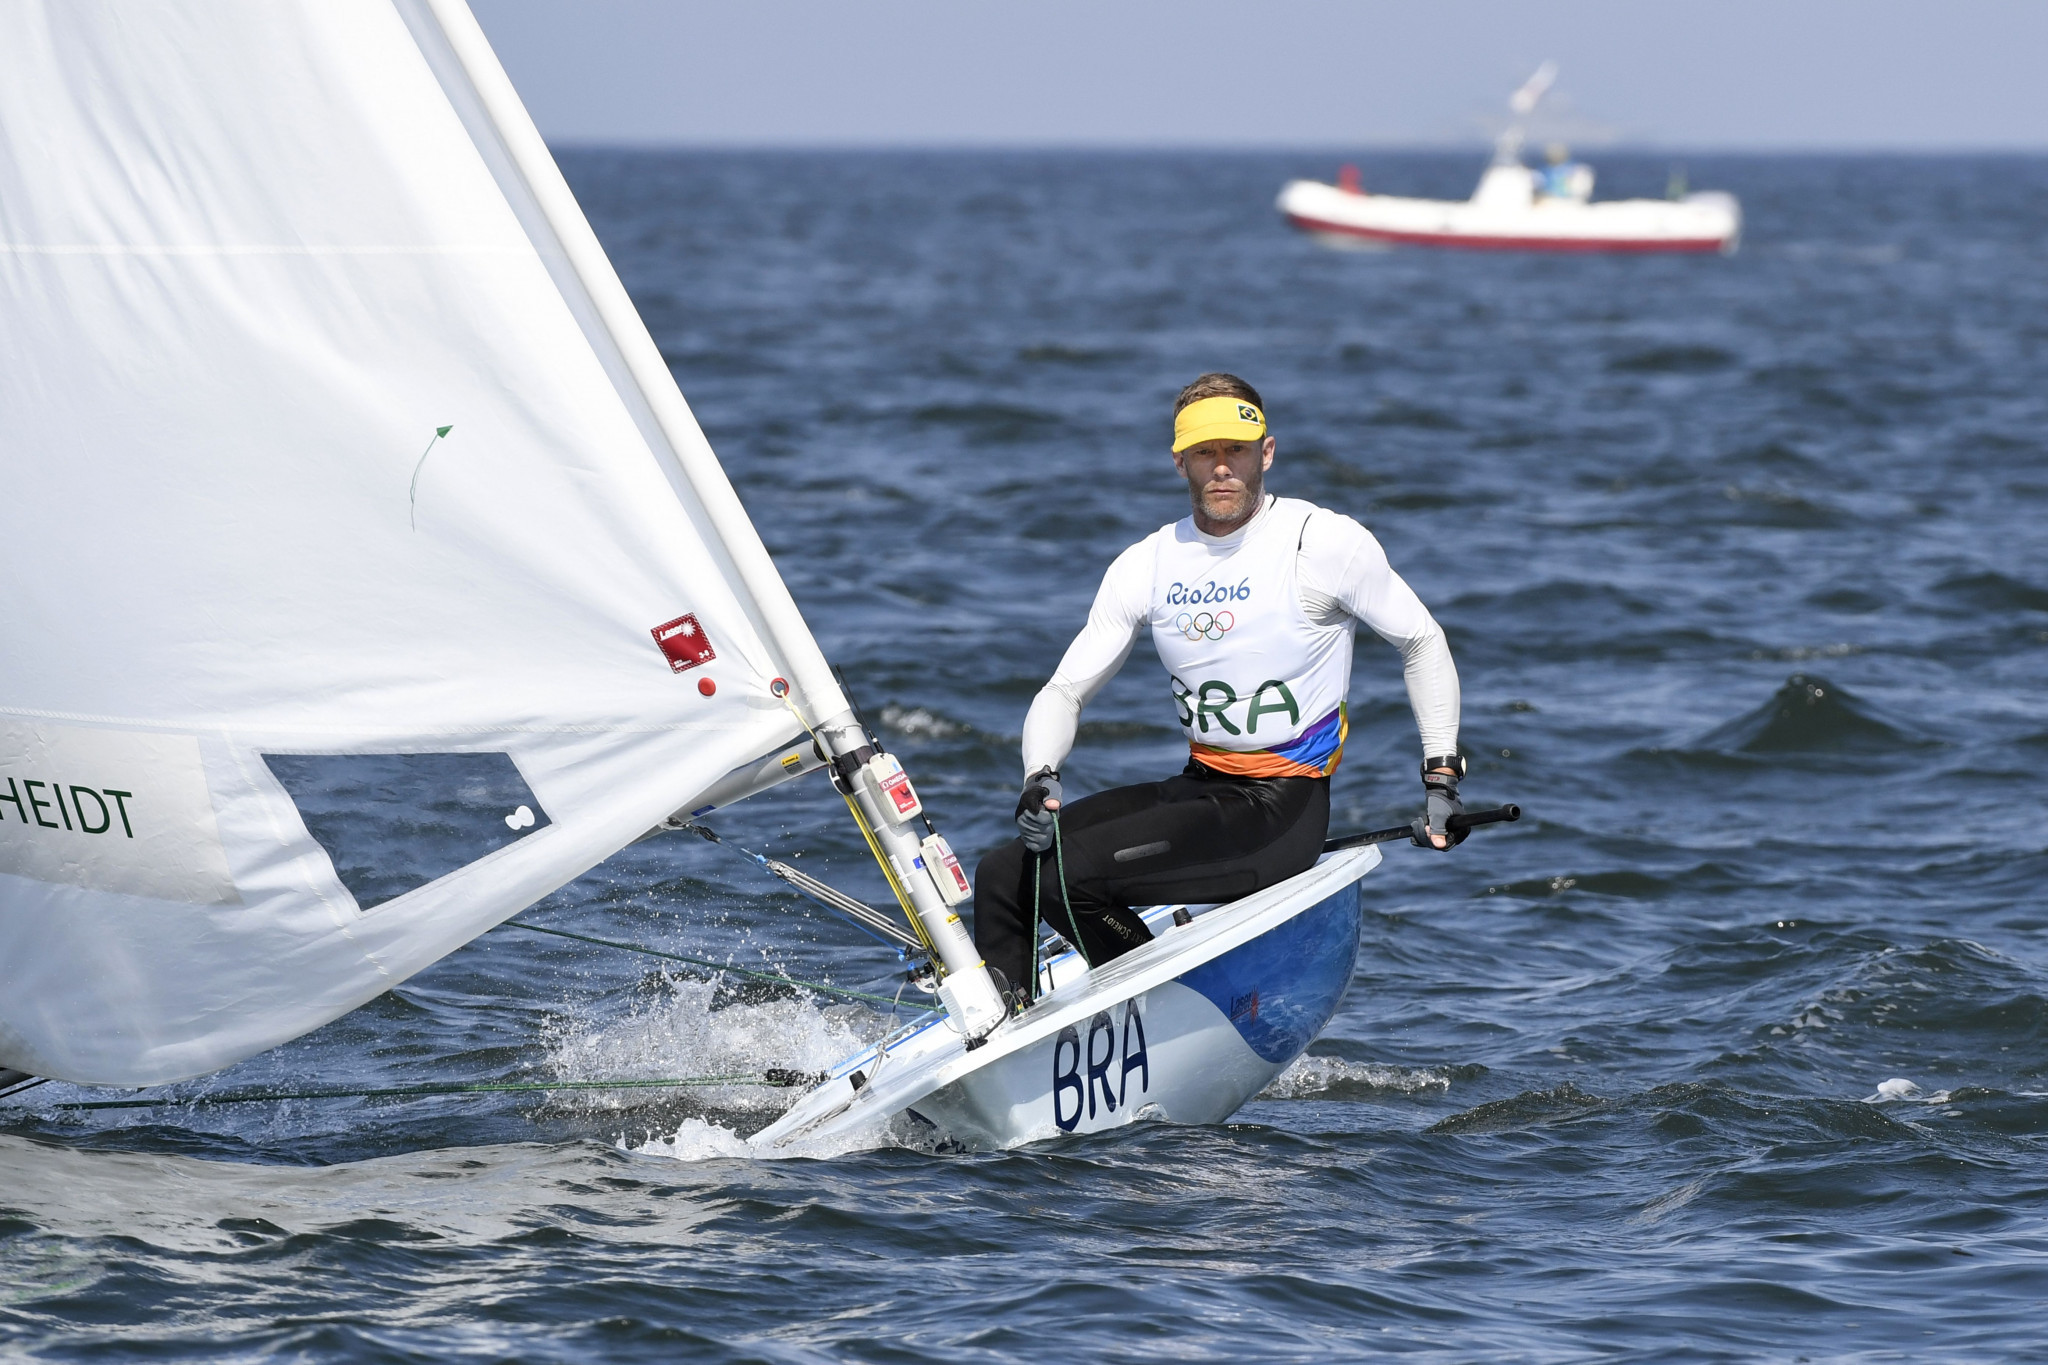 Brazilian sailing legend announces retirement from Olympic competition